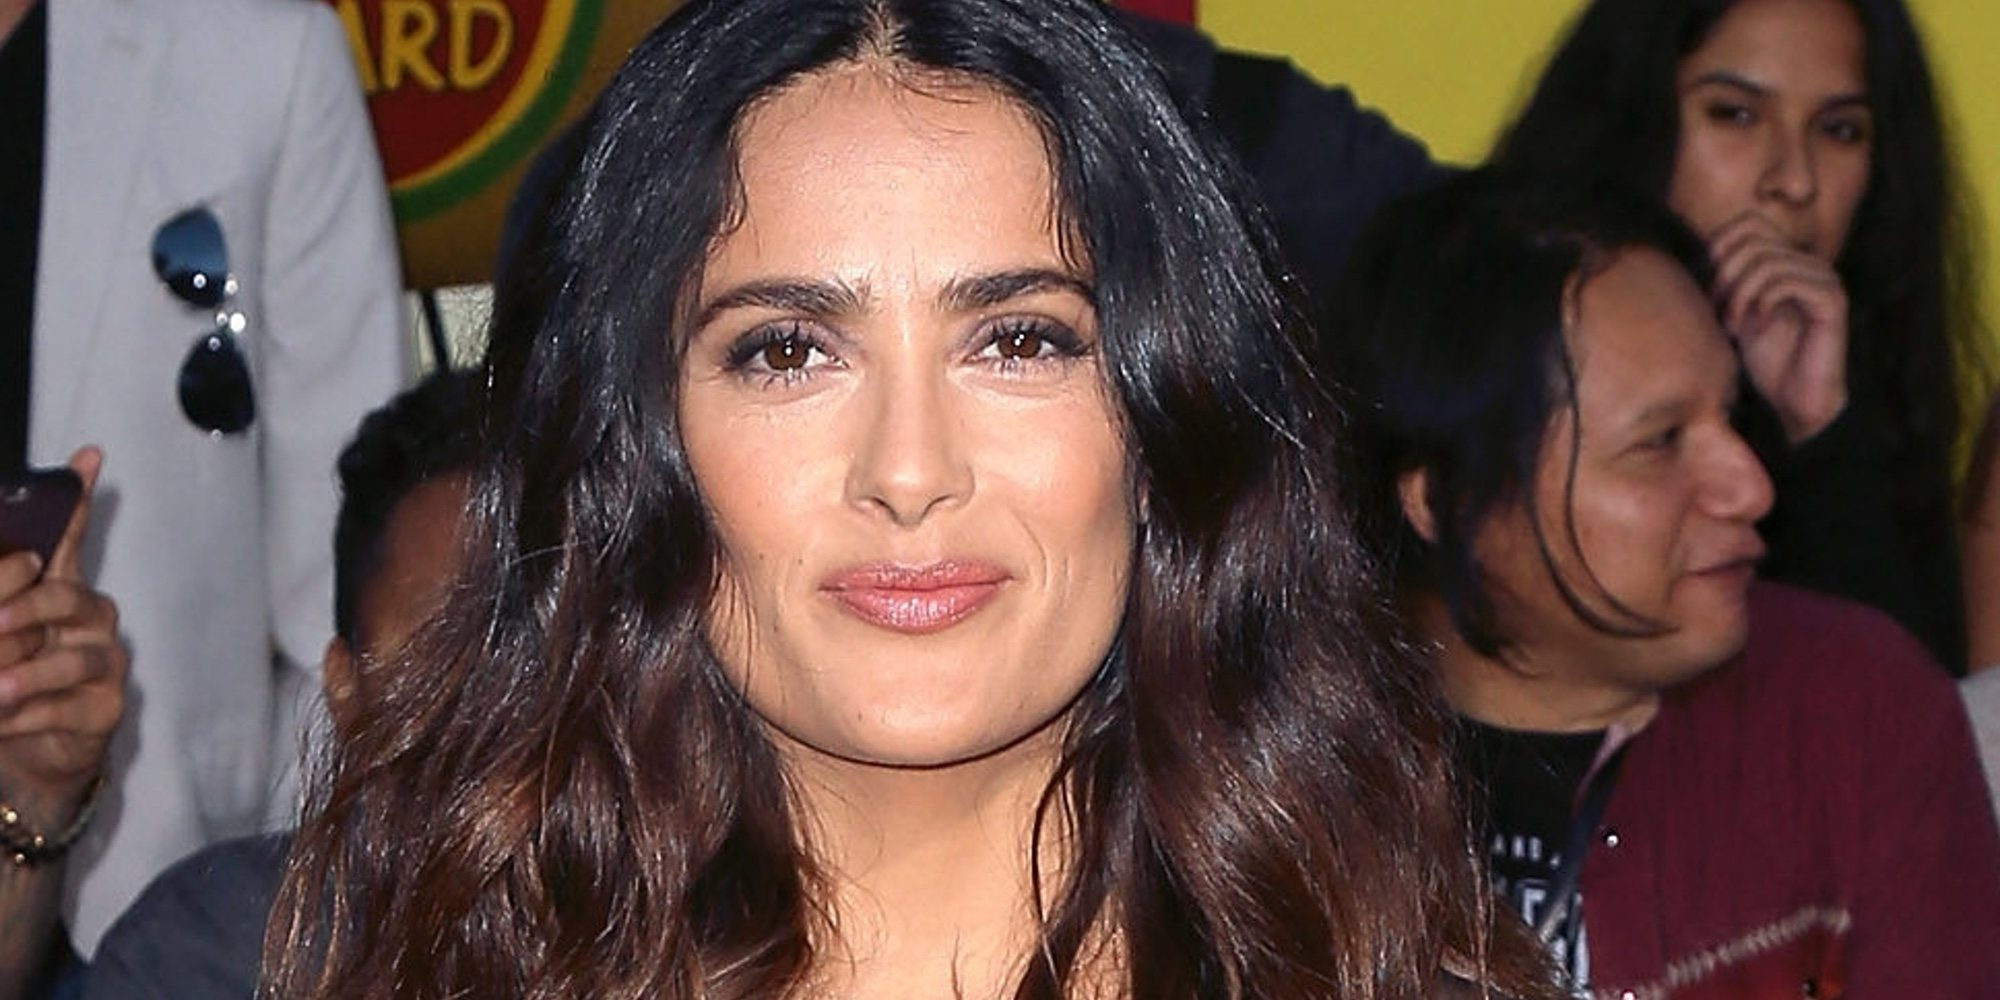 Salma Hayek etiqueta por error a Cole Sprouse como actor de 'Stranger Things' y no de 'Riverdale'